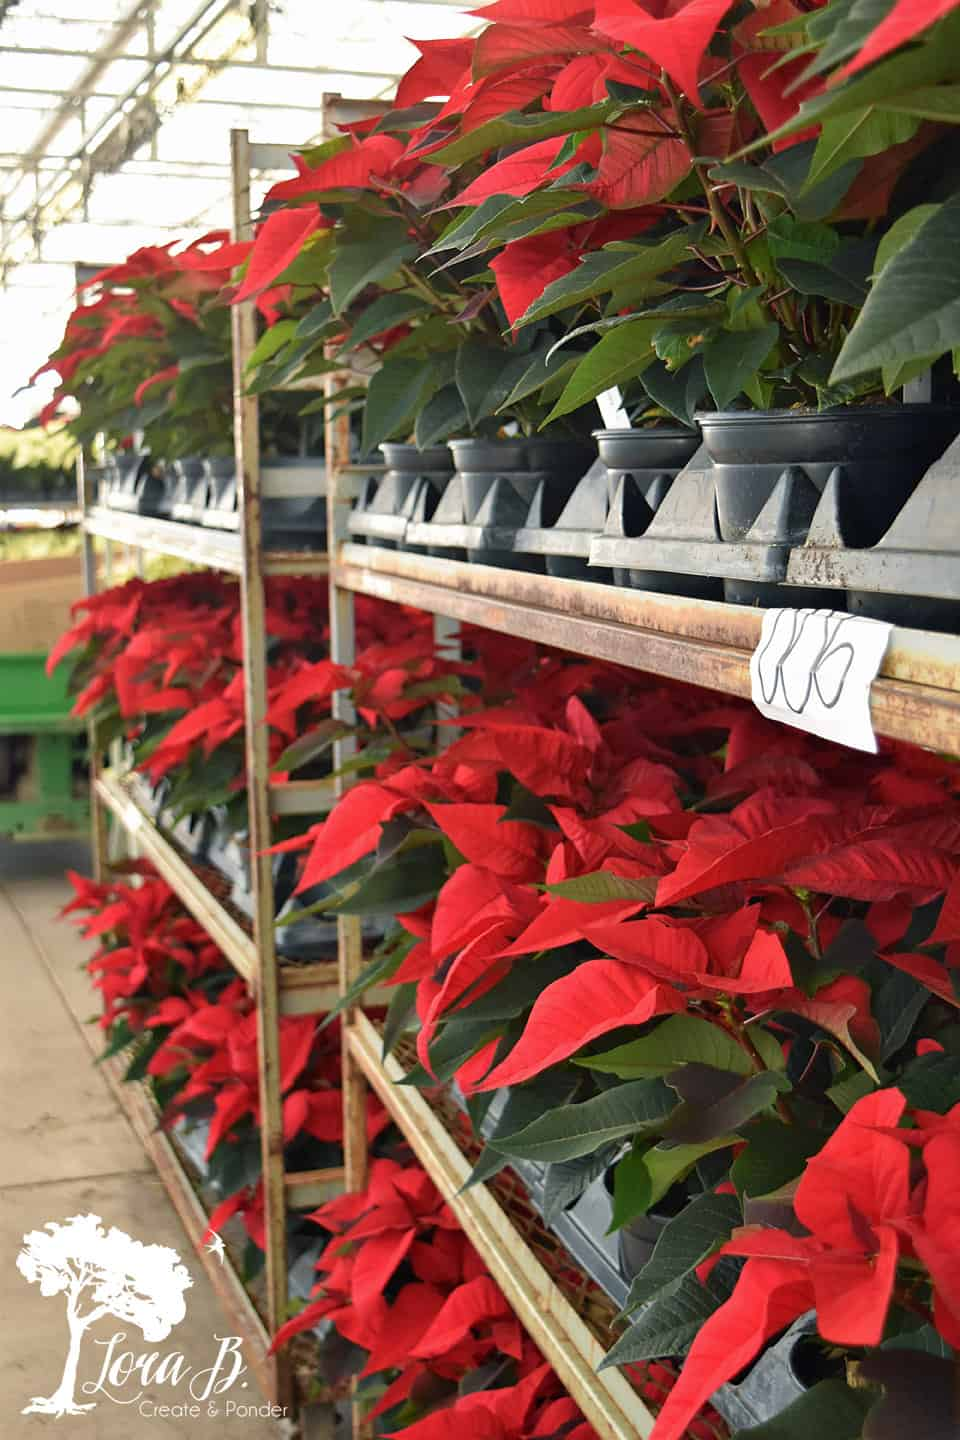 Poinsettias being shipped.